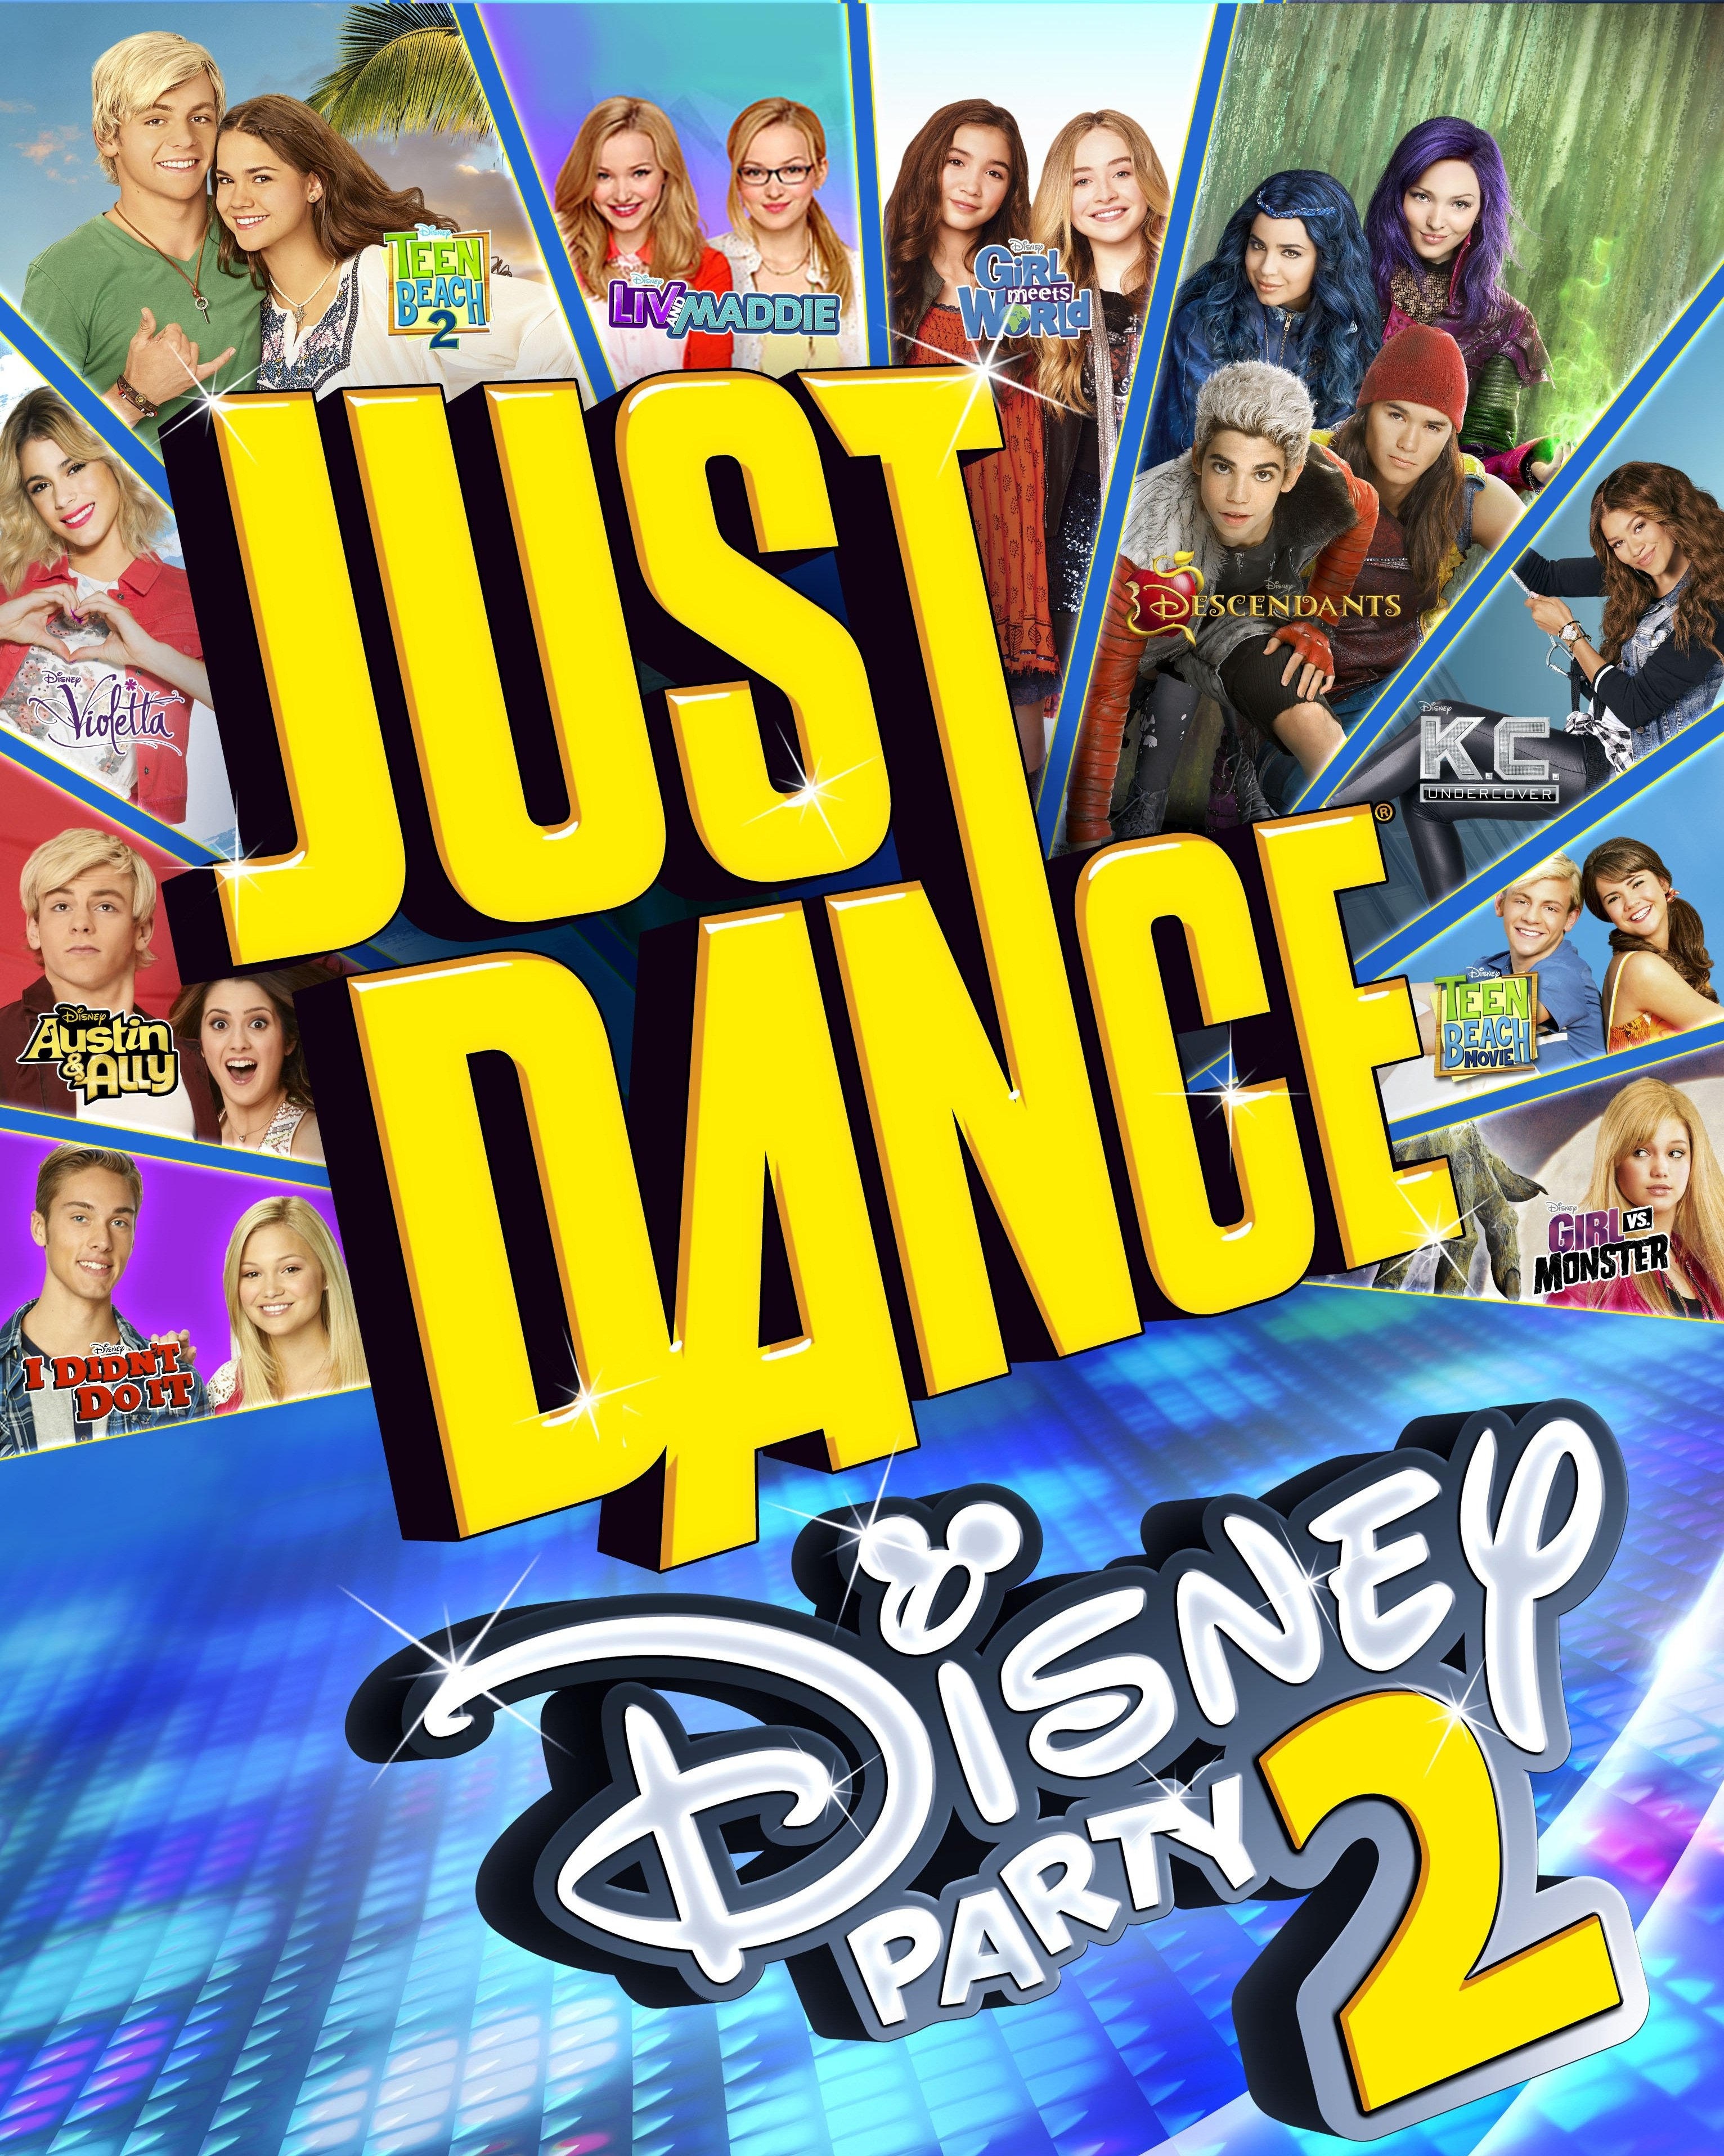 ubisoft announces just dance disney party 2 is coming to the wii u this holiday season. Black Bedroom Furniture Sets. Home Design Ideas